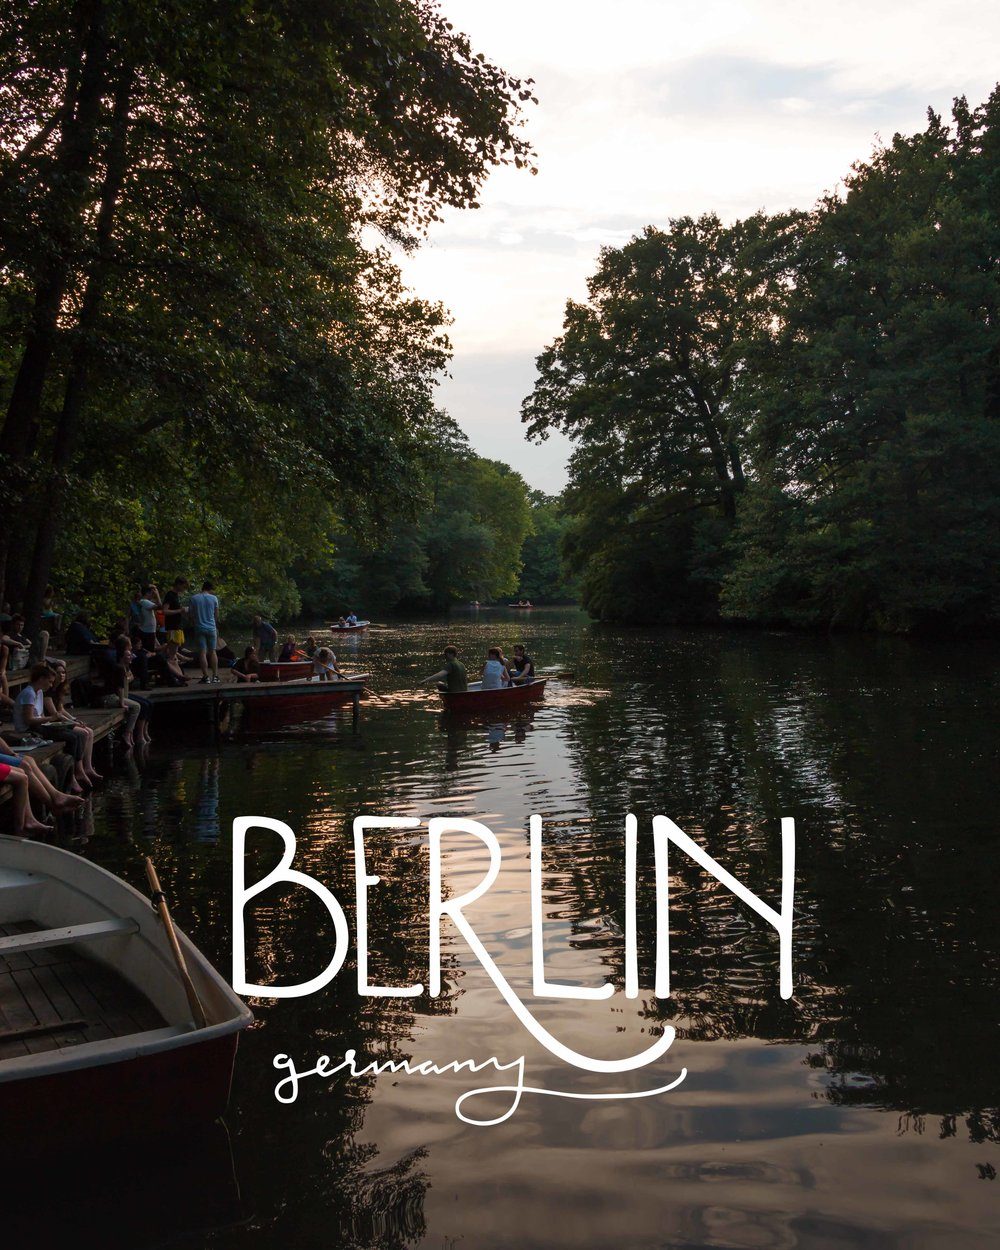 Berlin, Germany | 2016 Sea of Atlas Travel Recap